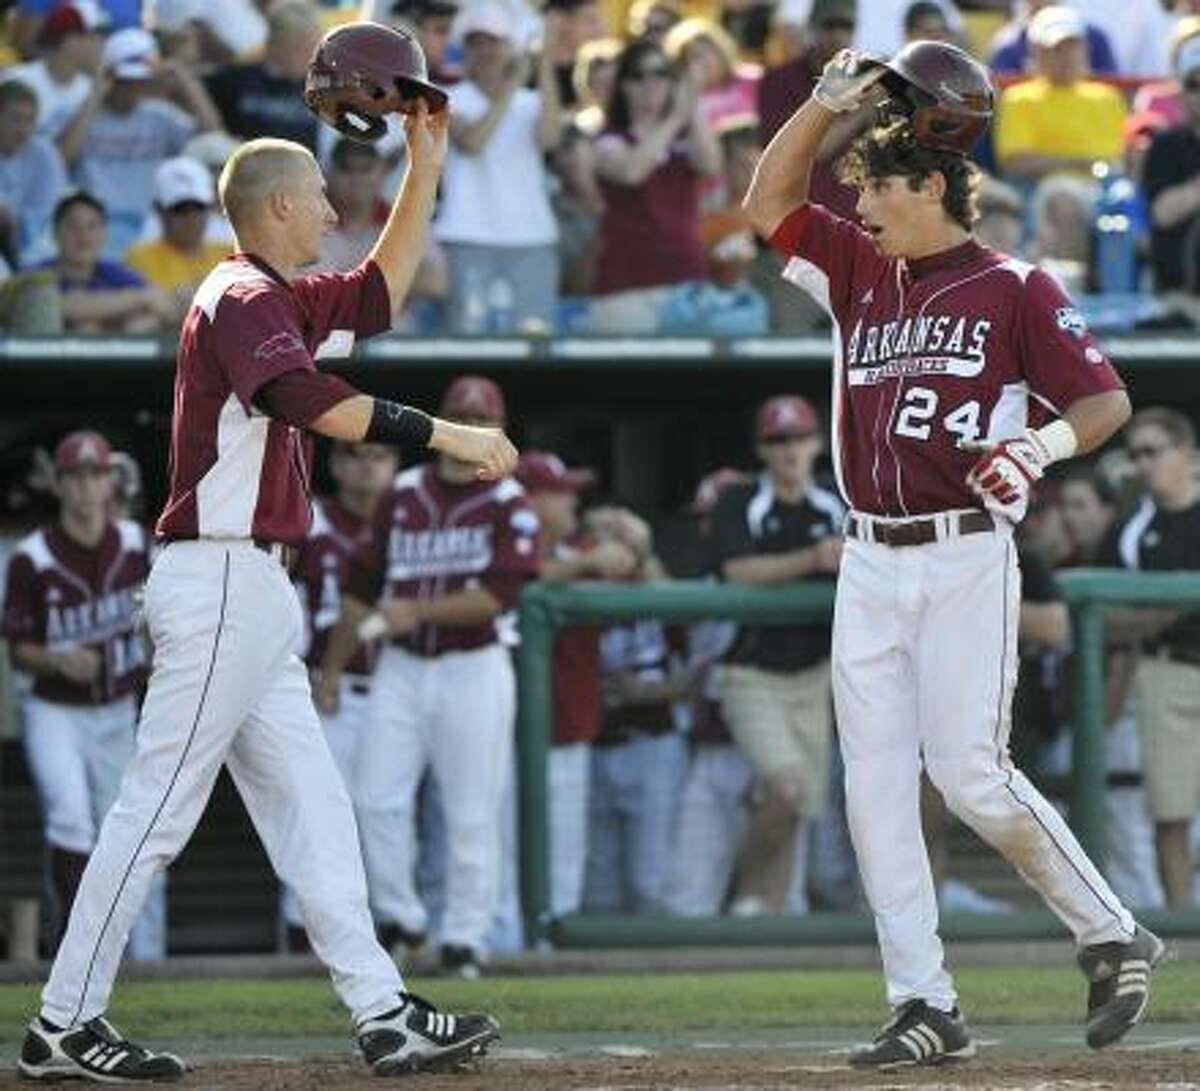 Arkansas' Brett Eibner, right, and Jacob House celebrate at home plate after Eibner hit a two-run homer against LSU during the seventh inning.